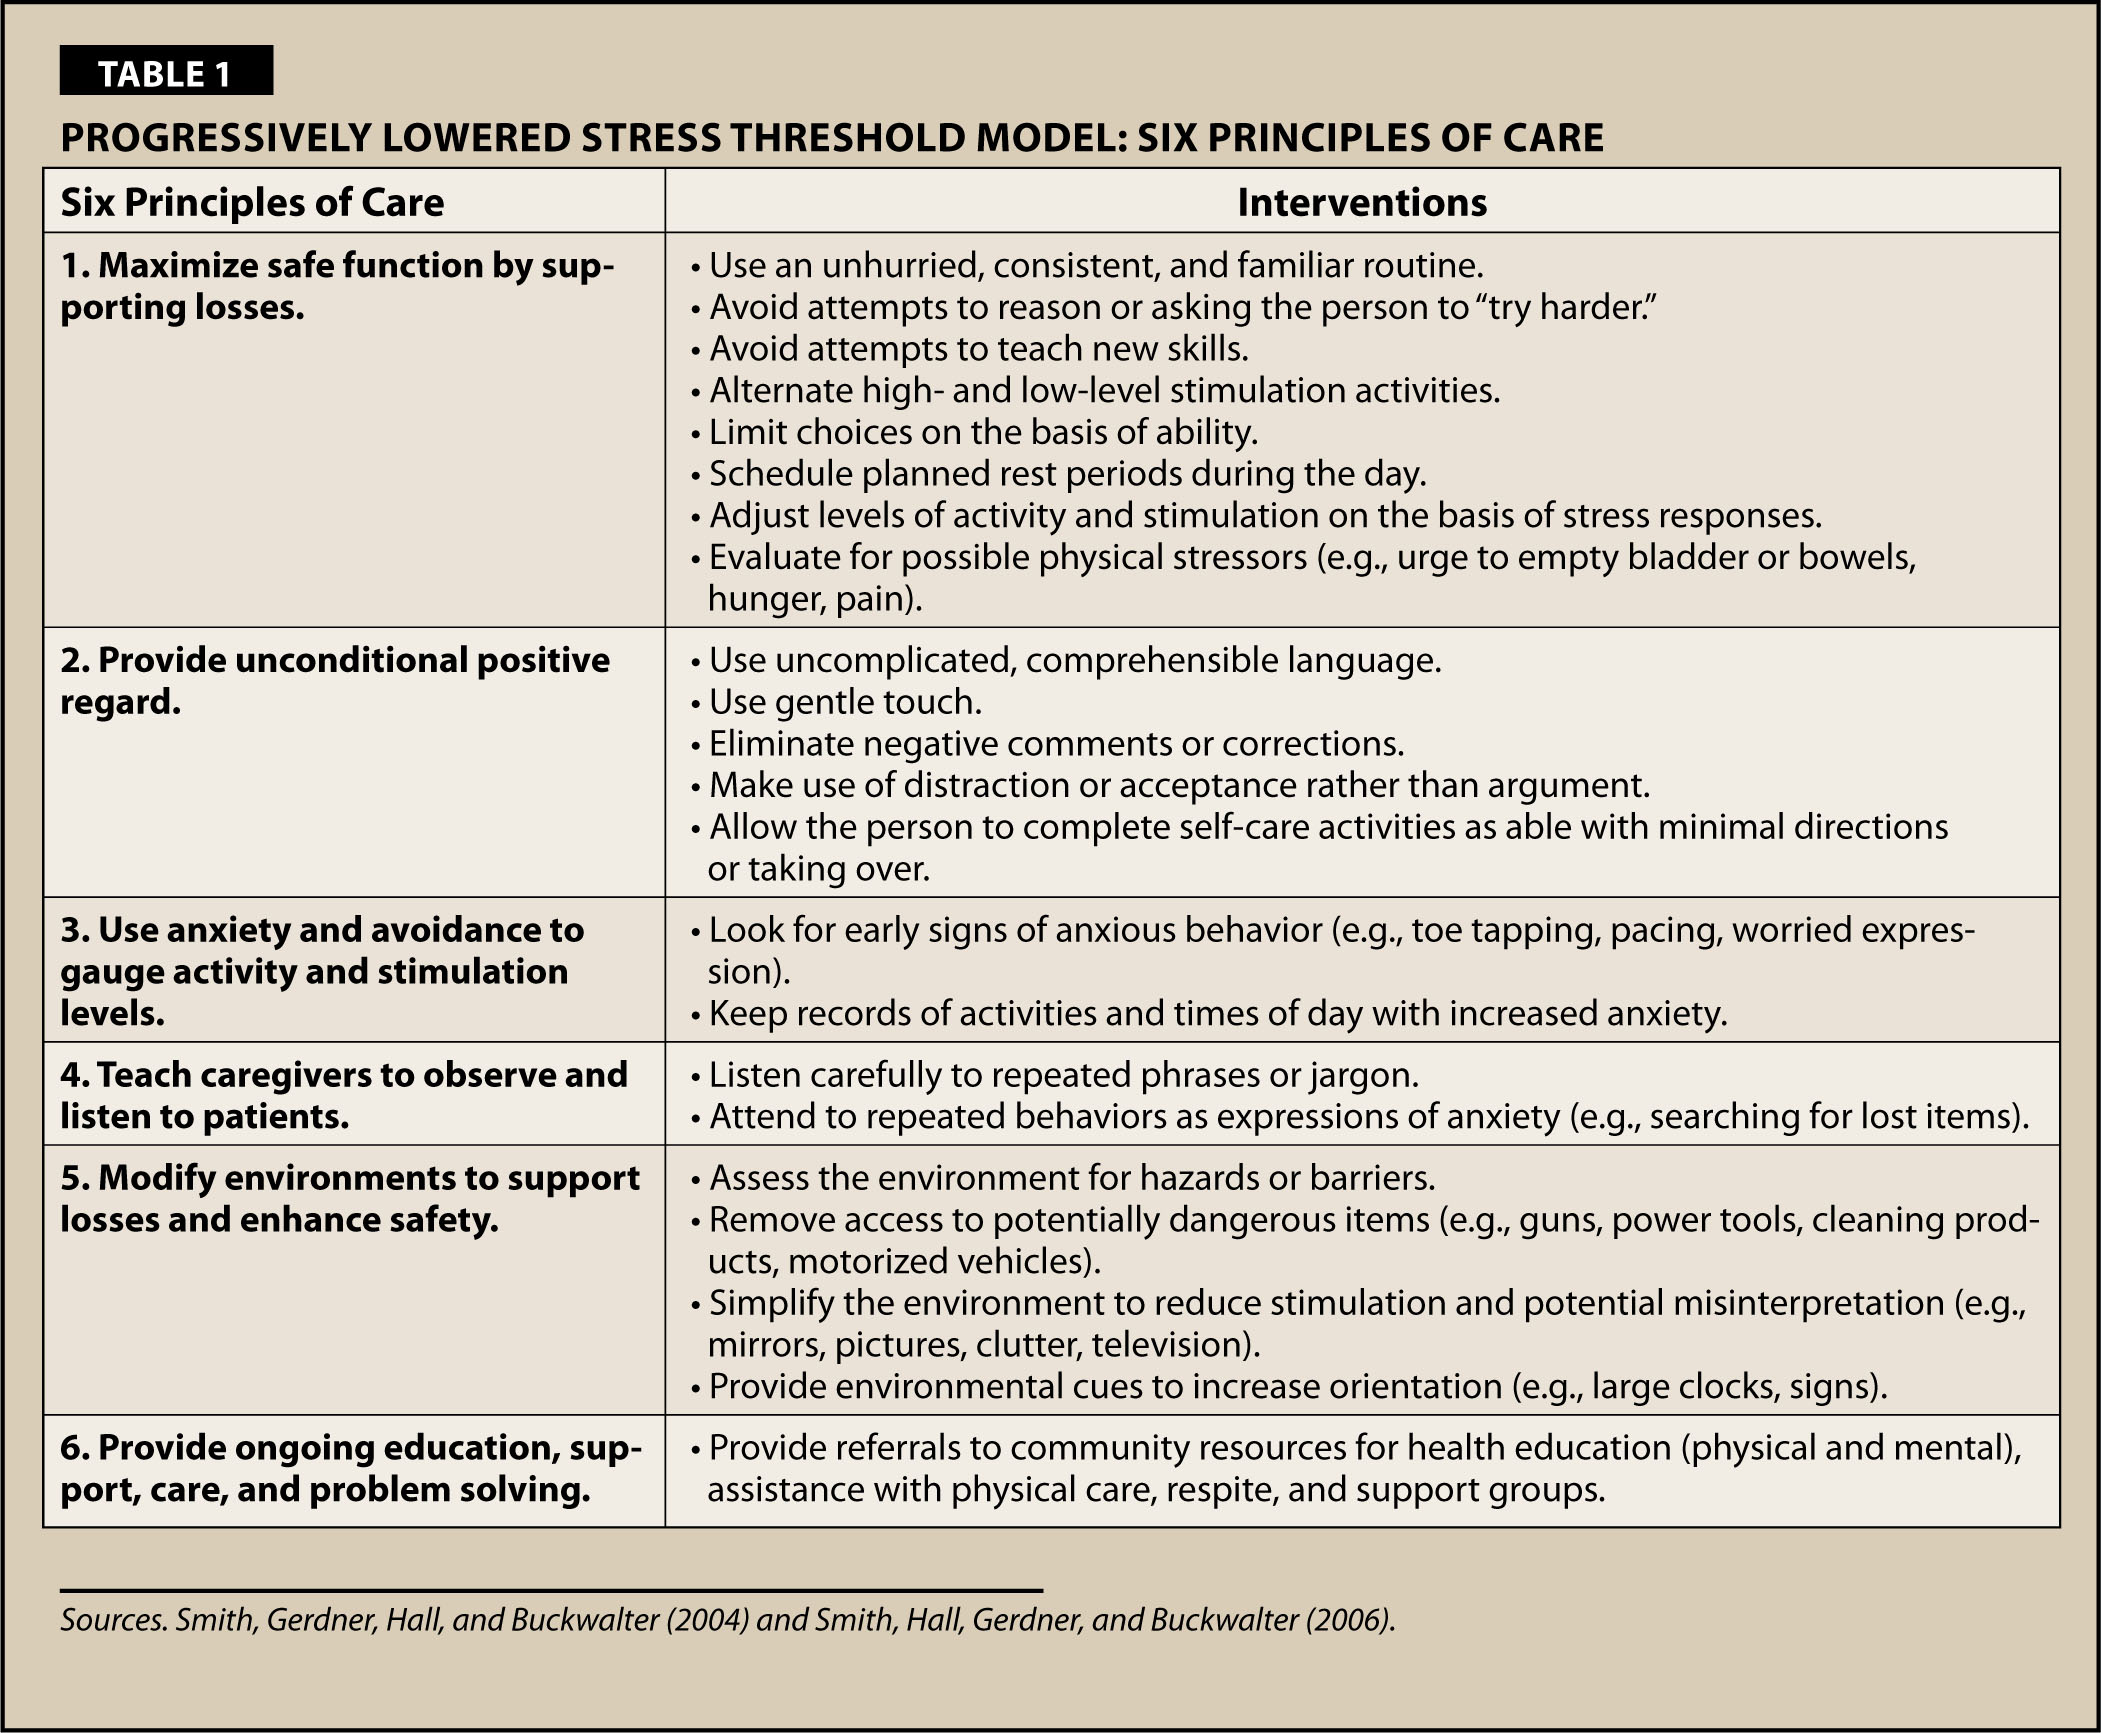 Progressively Lowered Stress Threshold Model: Six Principles of Care